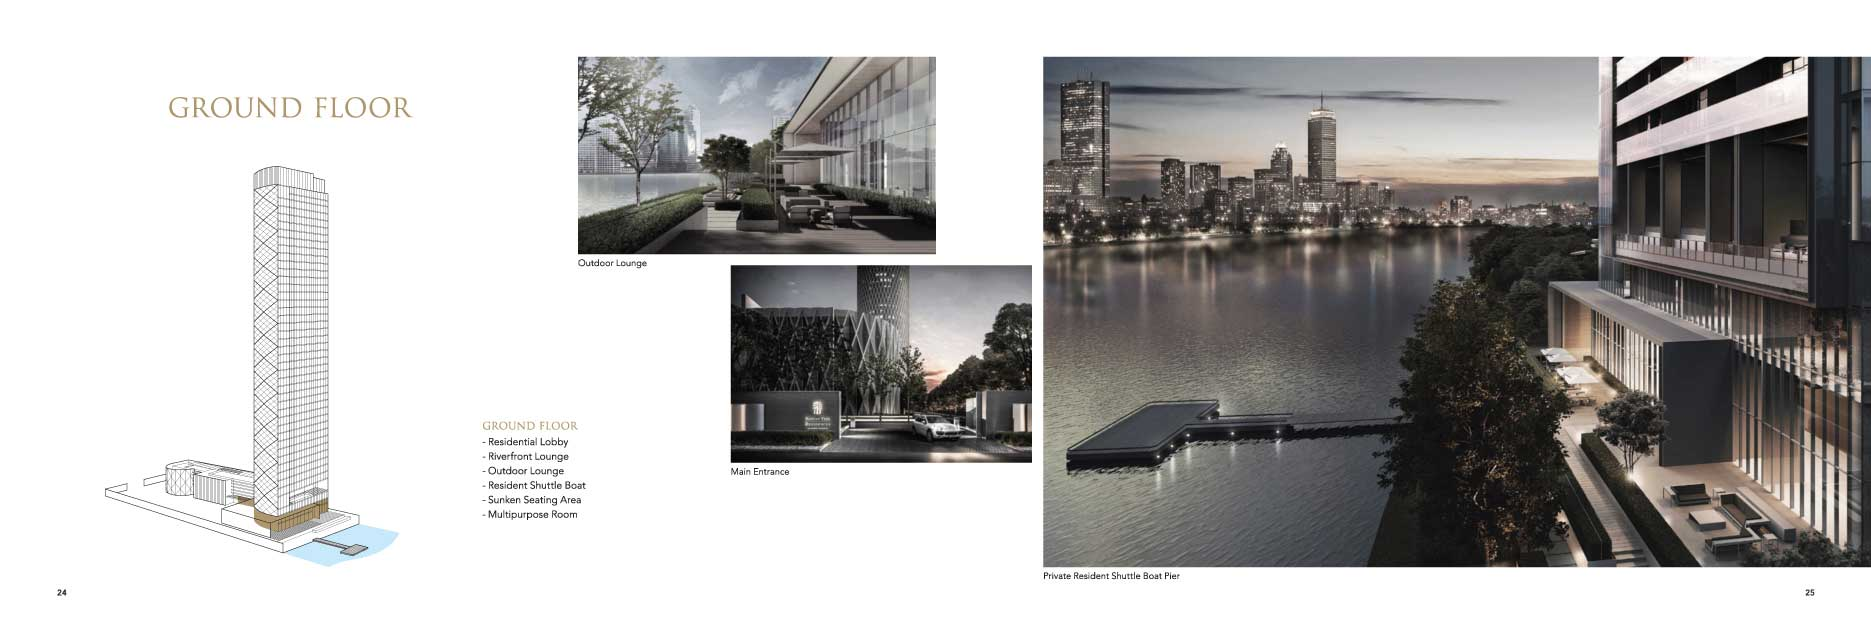 Banyan Tree Residences Riverside Bangkok Brochure 20